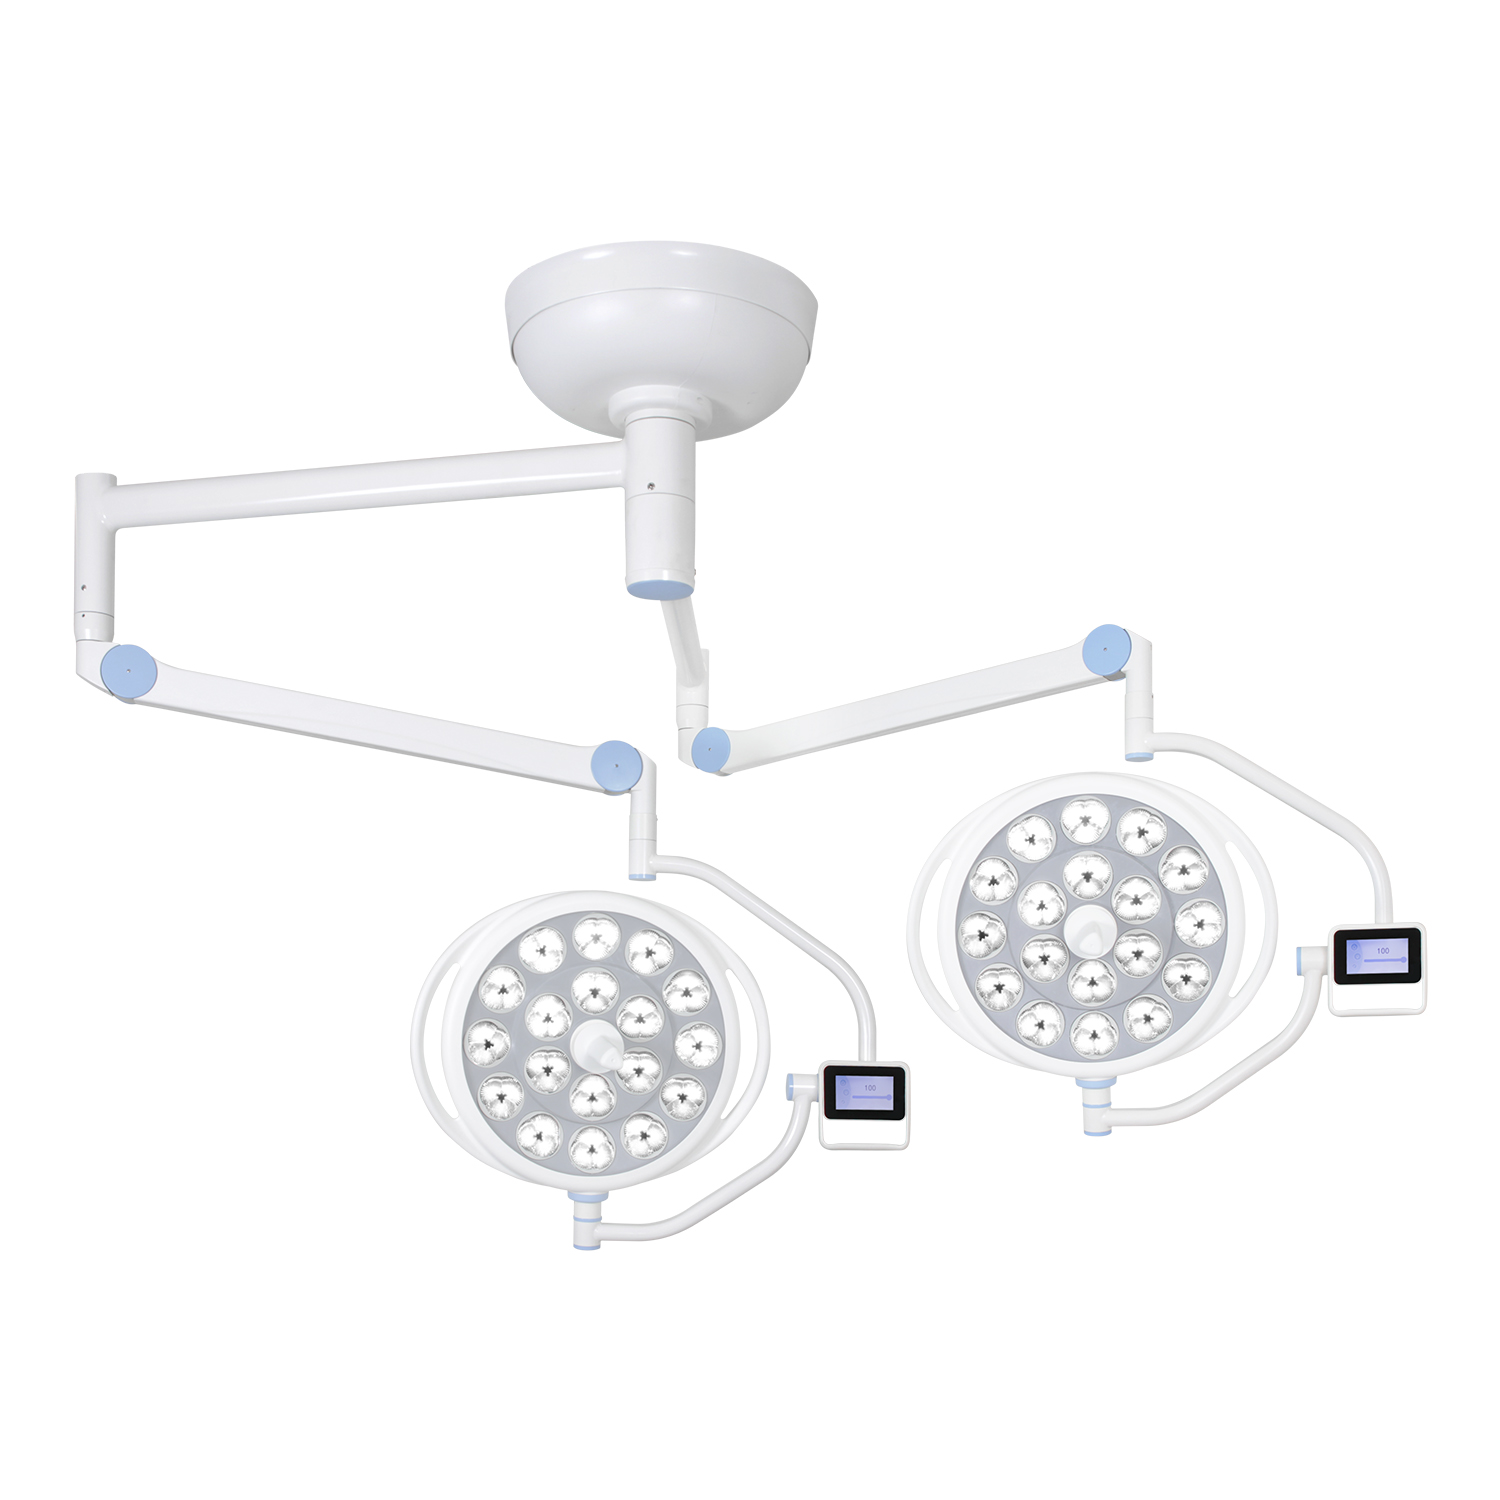 Avante Vision LED 120 Surgical Lighting System